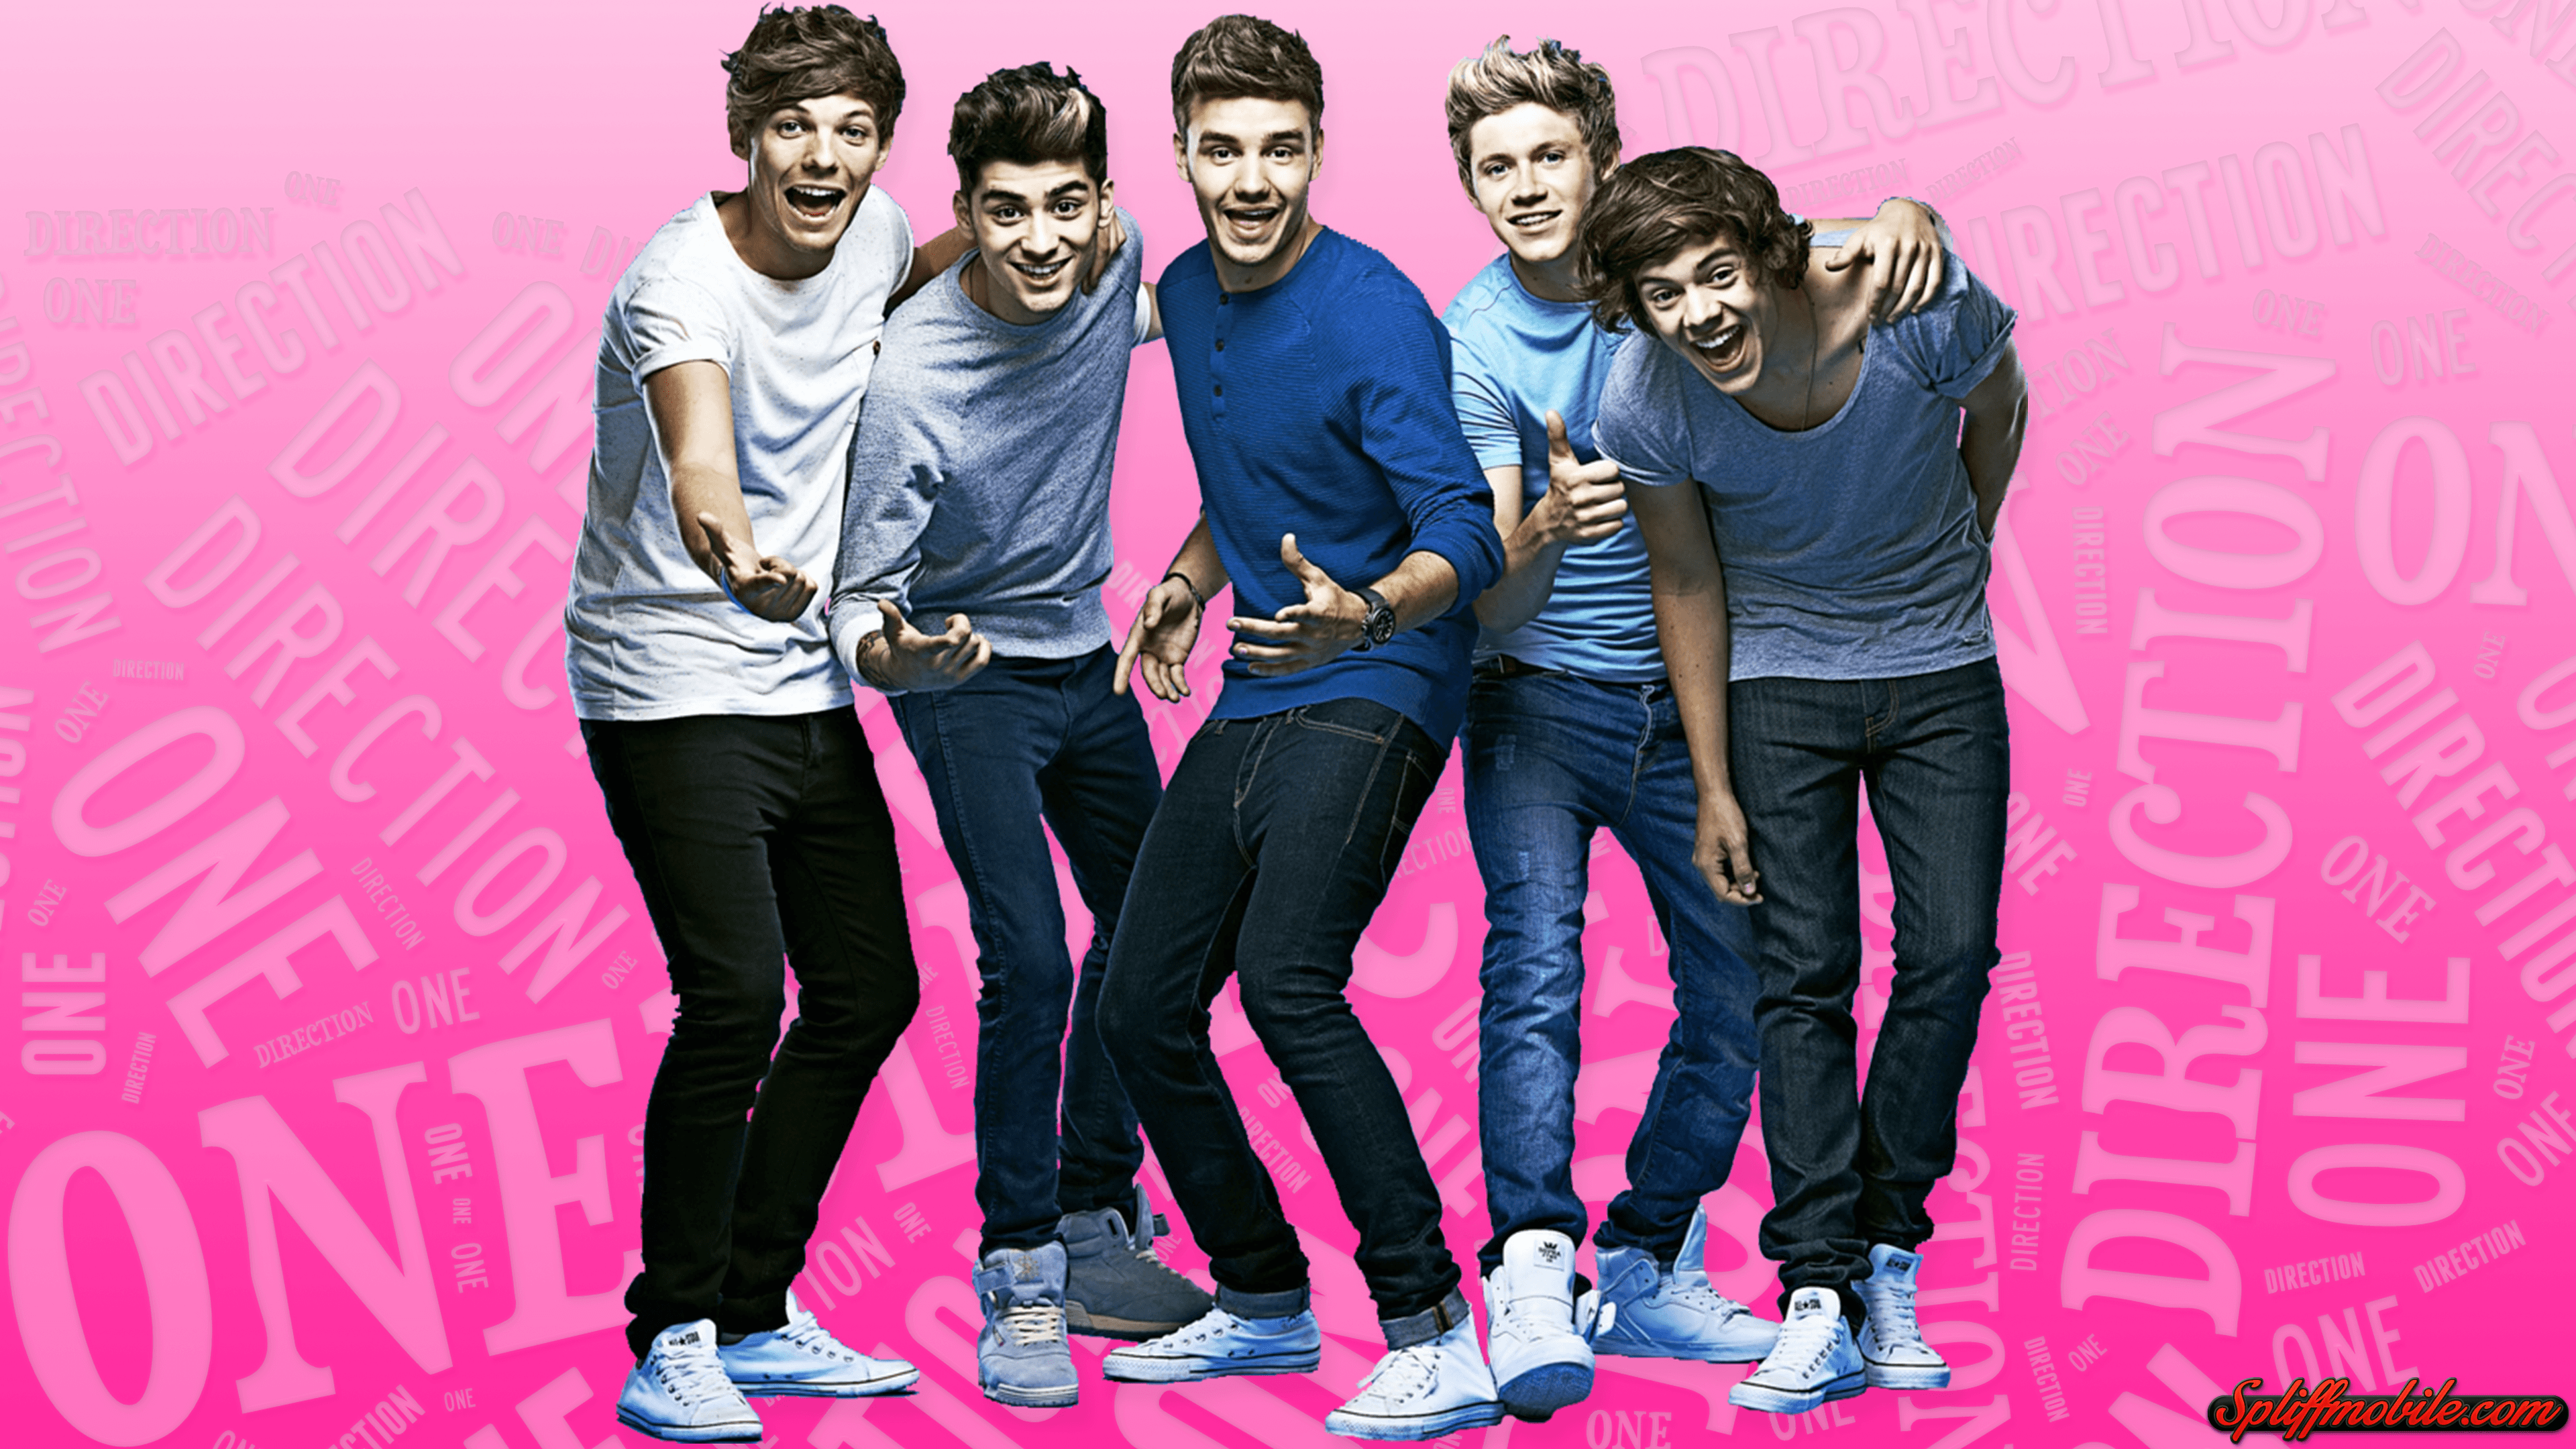 One Direction 2017 Wallpapers